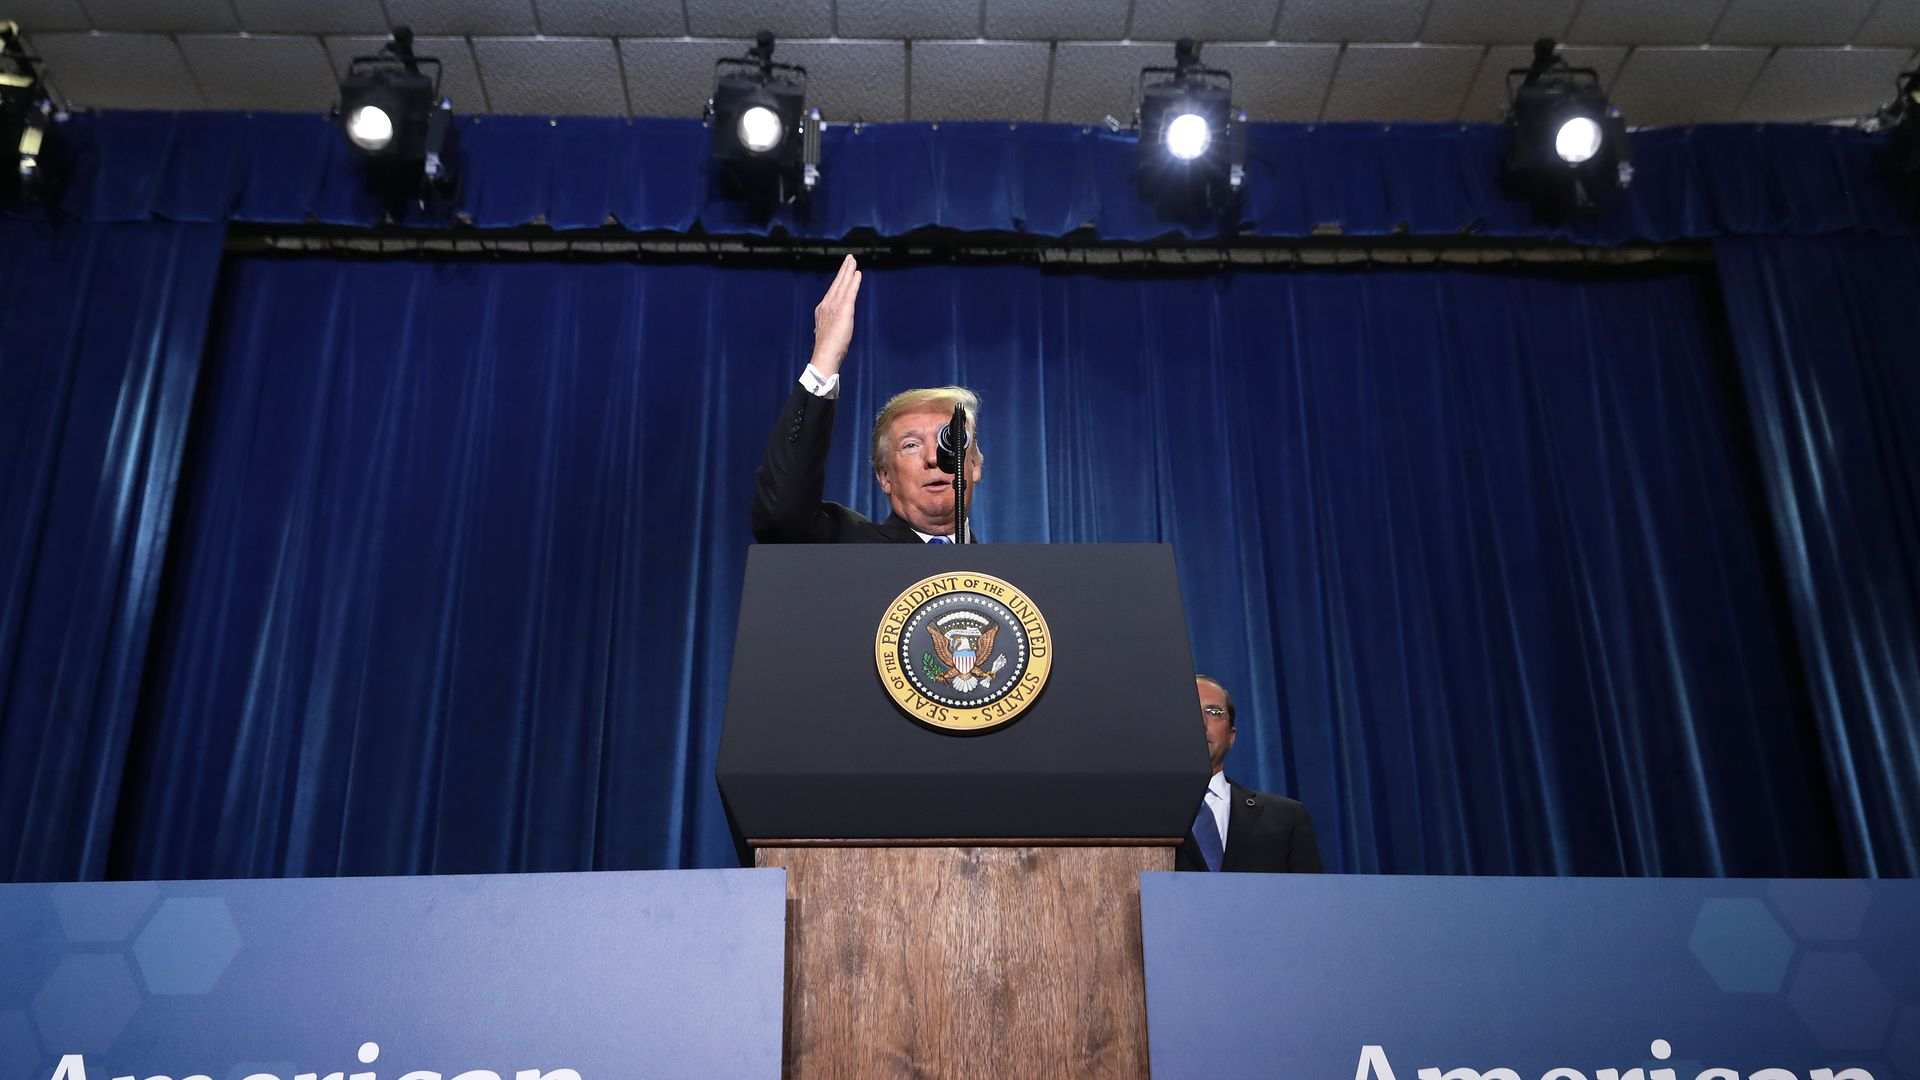 In this image, President Trump speaks behind a podium with the presidential seal on it.